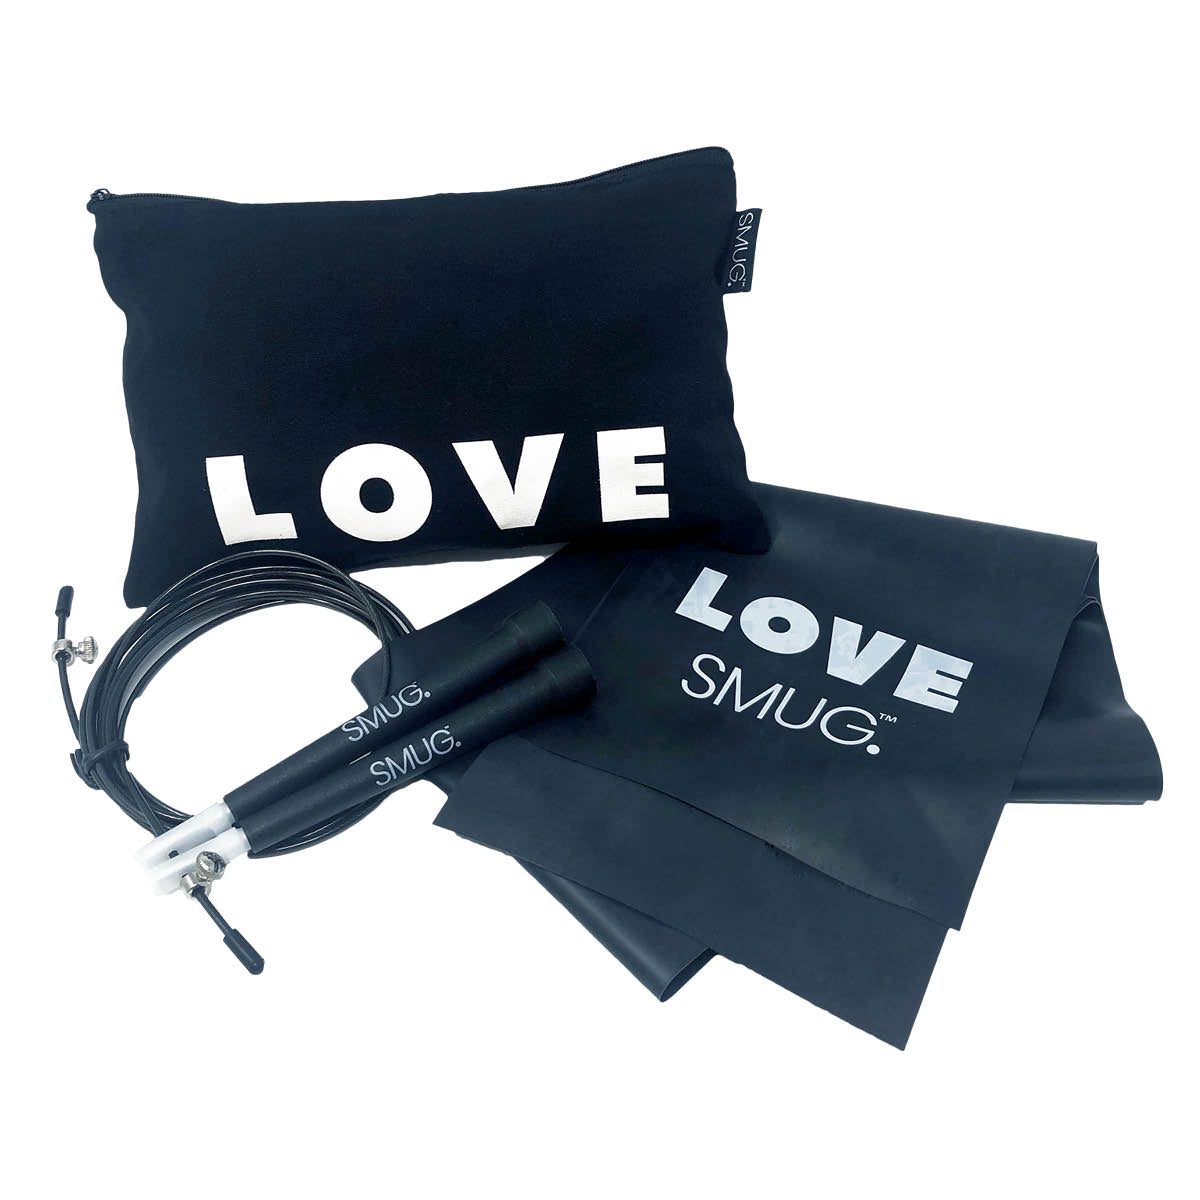 Skipping Rope, Resistance Band & Bag Fitness Kit - Love Print, Black